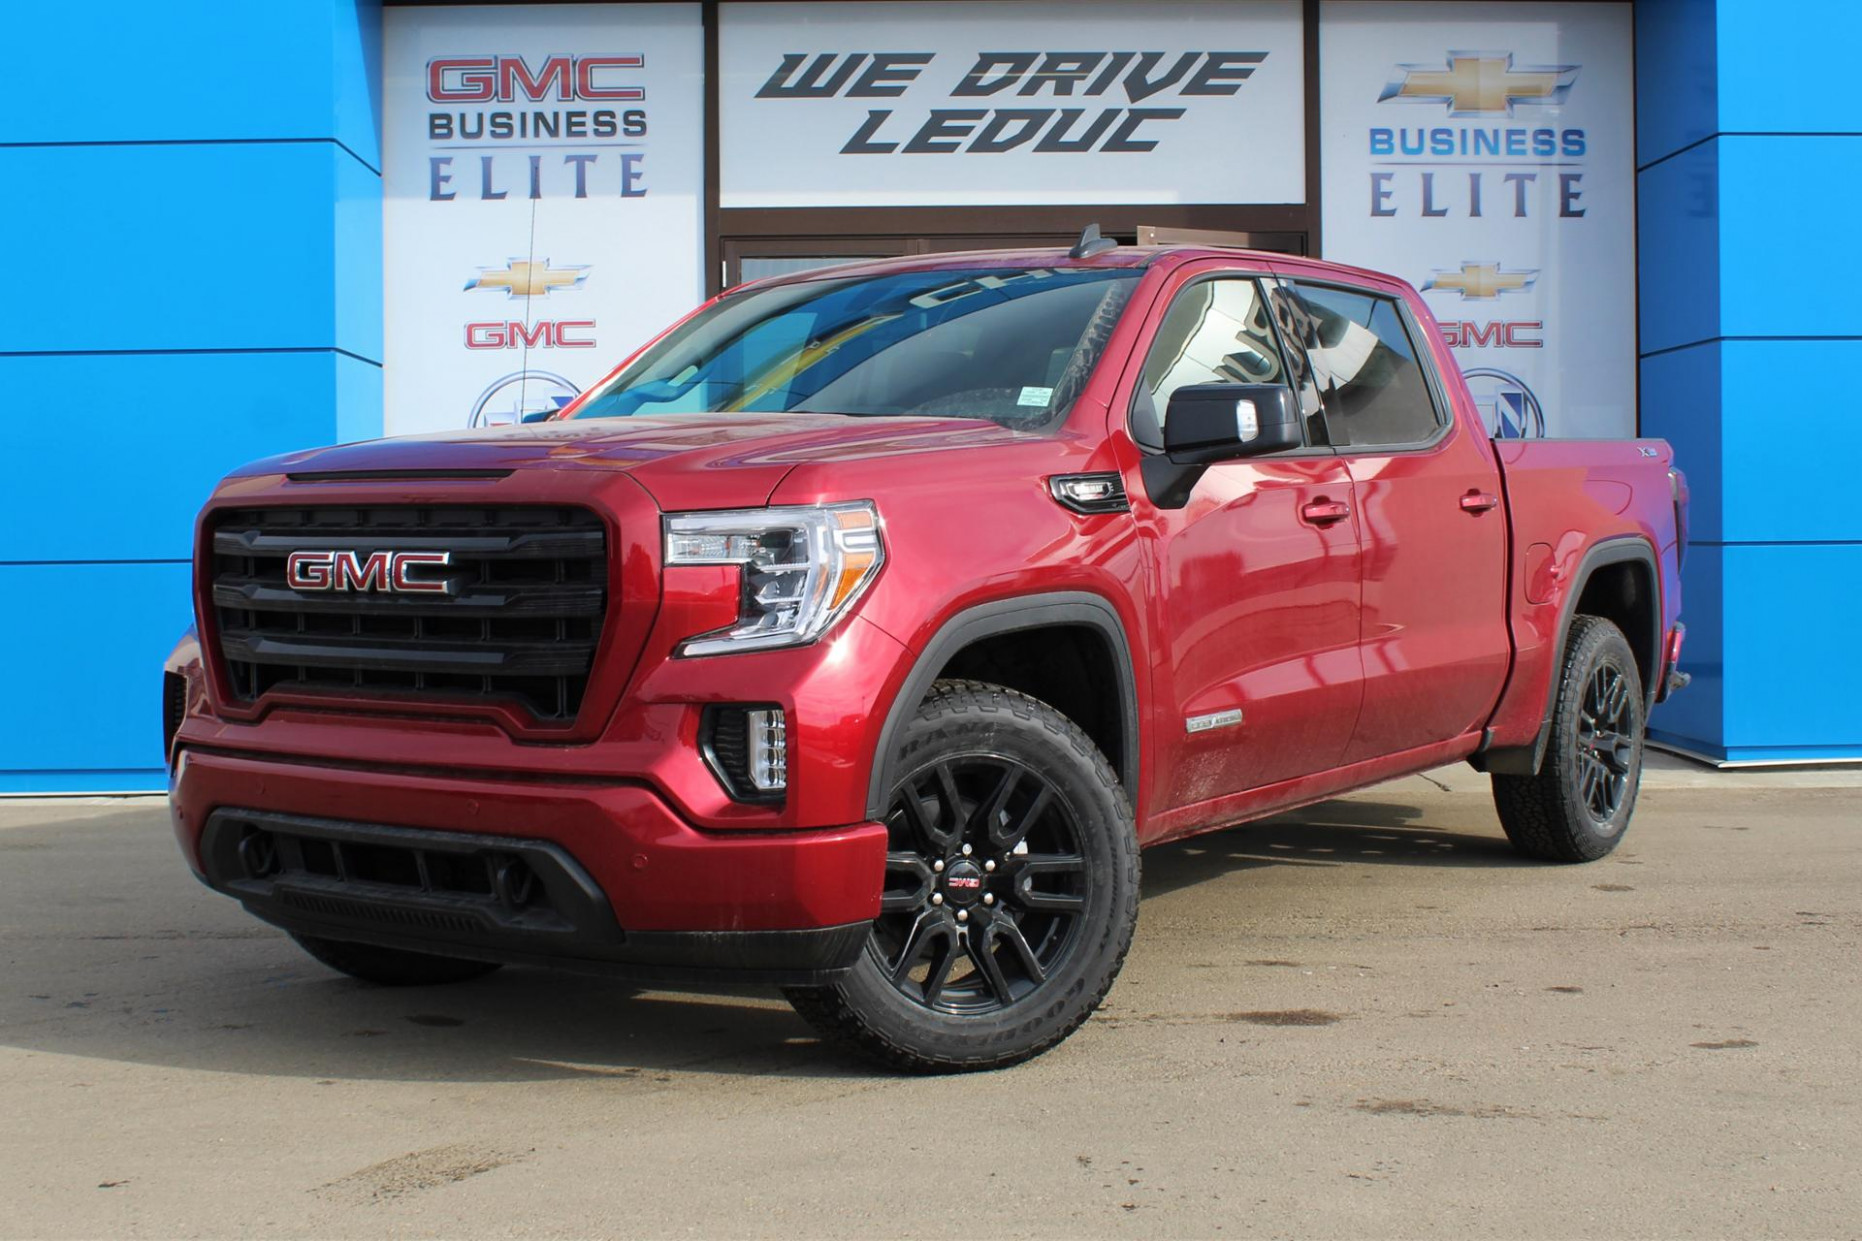 New 11 GMC Sierra 11 Crew Cab Short Box 11-Wheel Drive ...